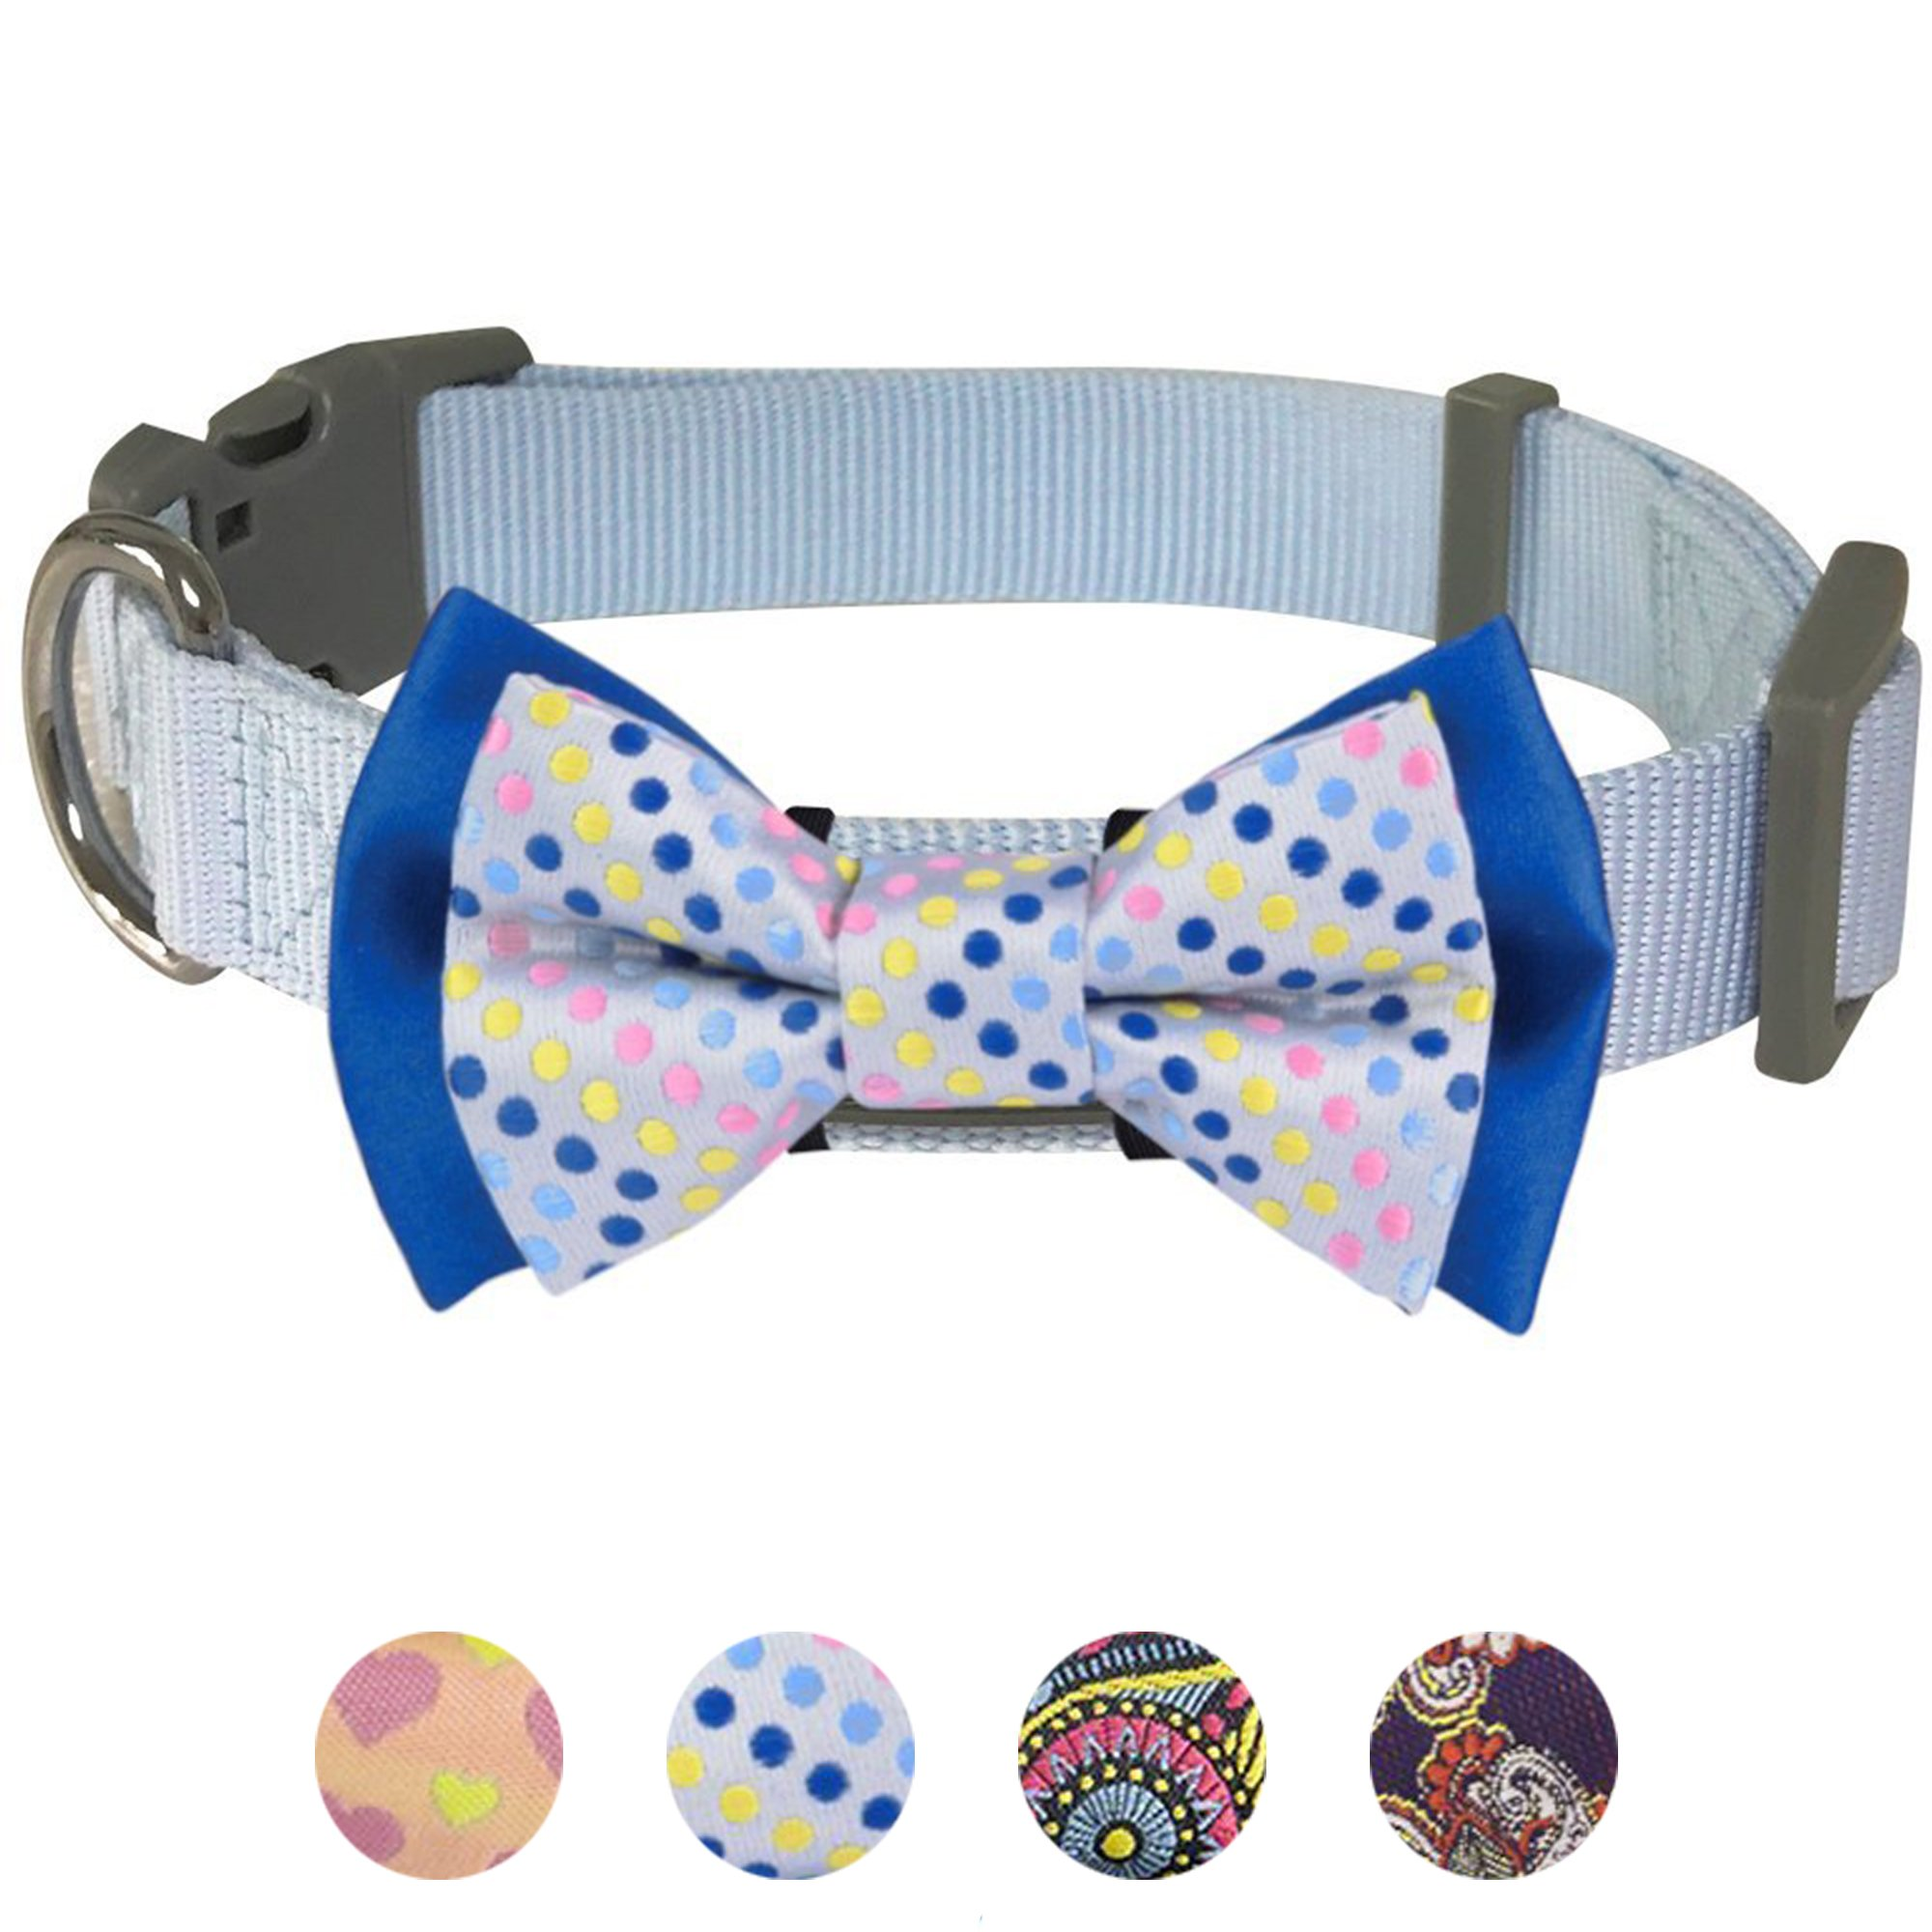 Blueberry Pet 4 Patterns Polka Dots Handmade Detachable Bow Tie Dog Collar in Neat Pastel Blue, Small, Neck 12''-16'', Adjustable Collars for Puppies & Small Dogs